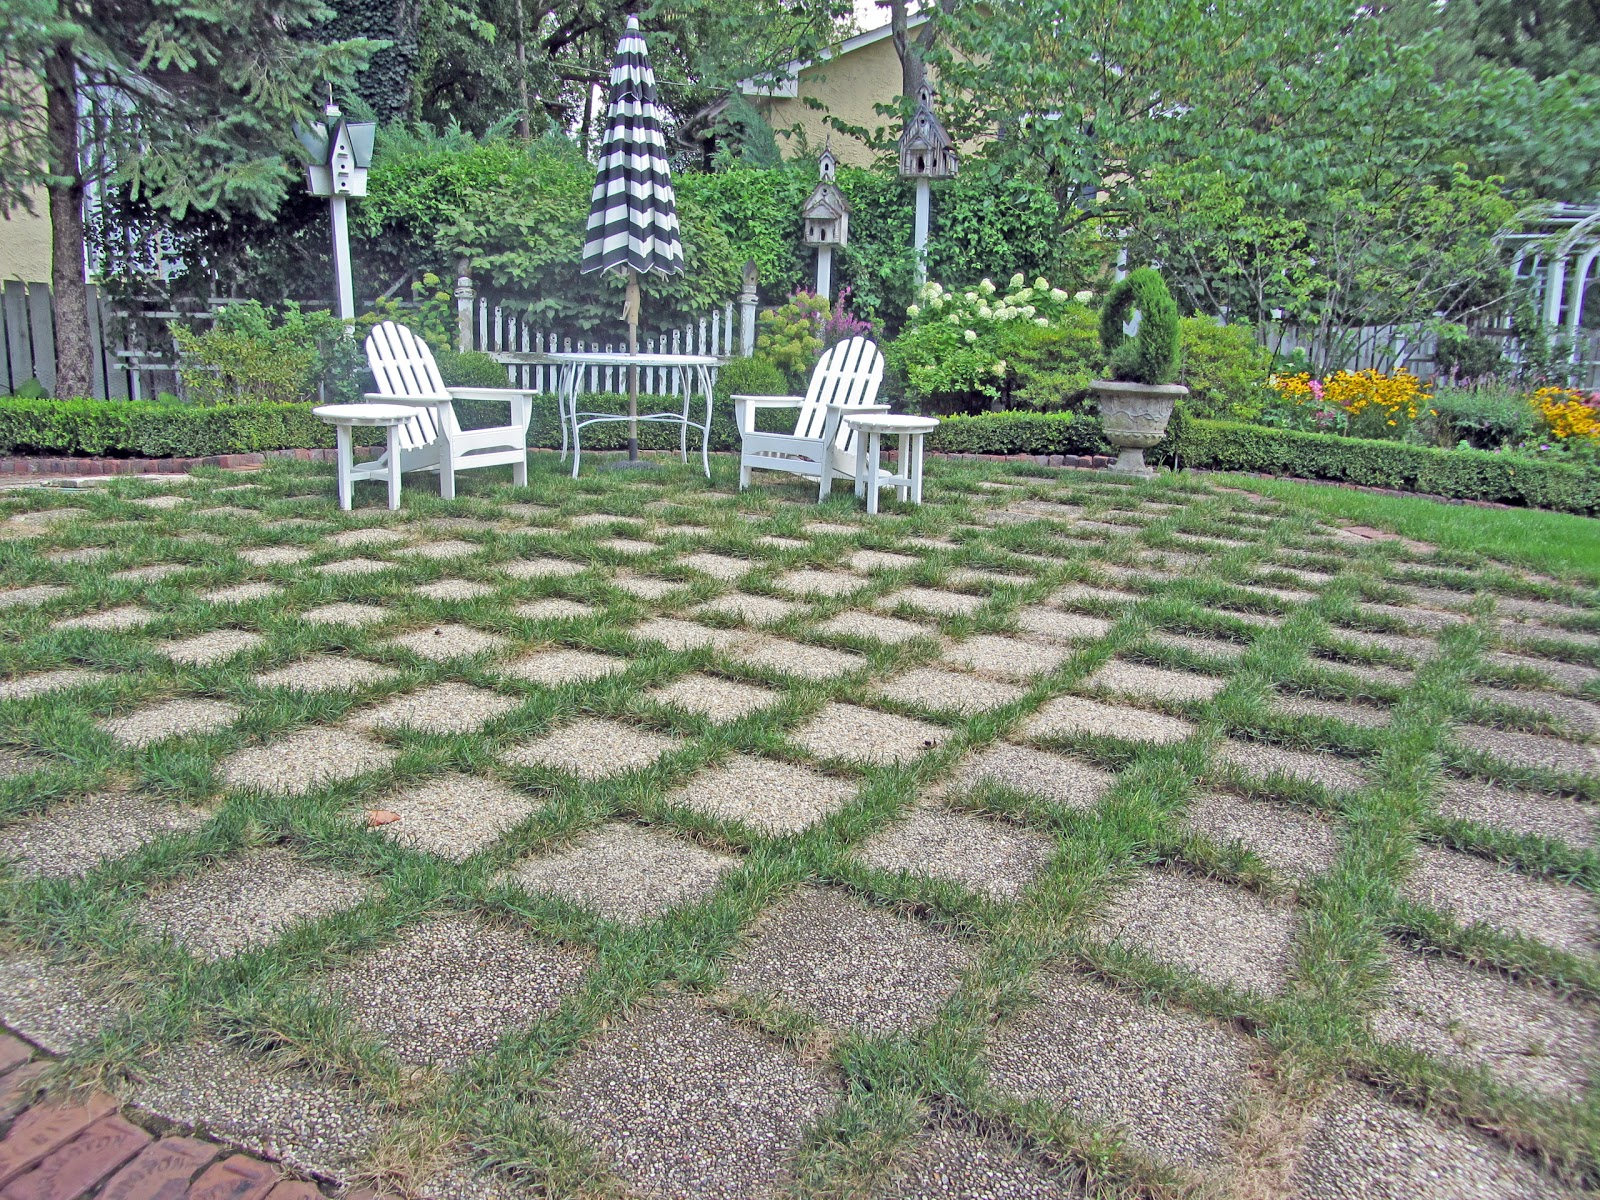 A Grass And Stone Patio, Difficult To Keep Green This Summer.